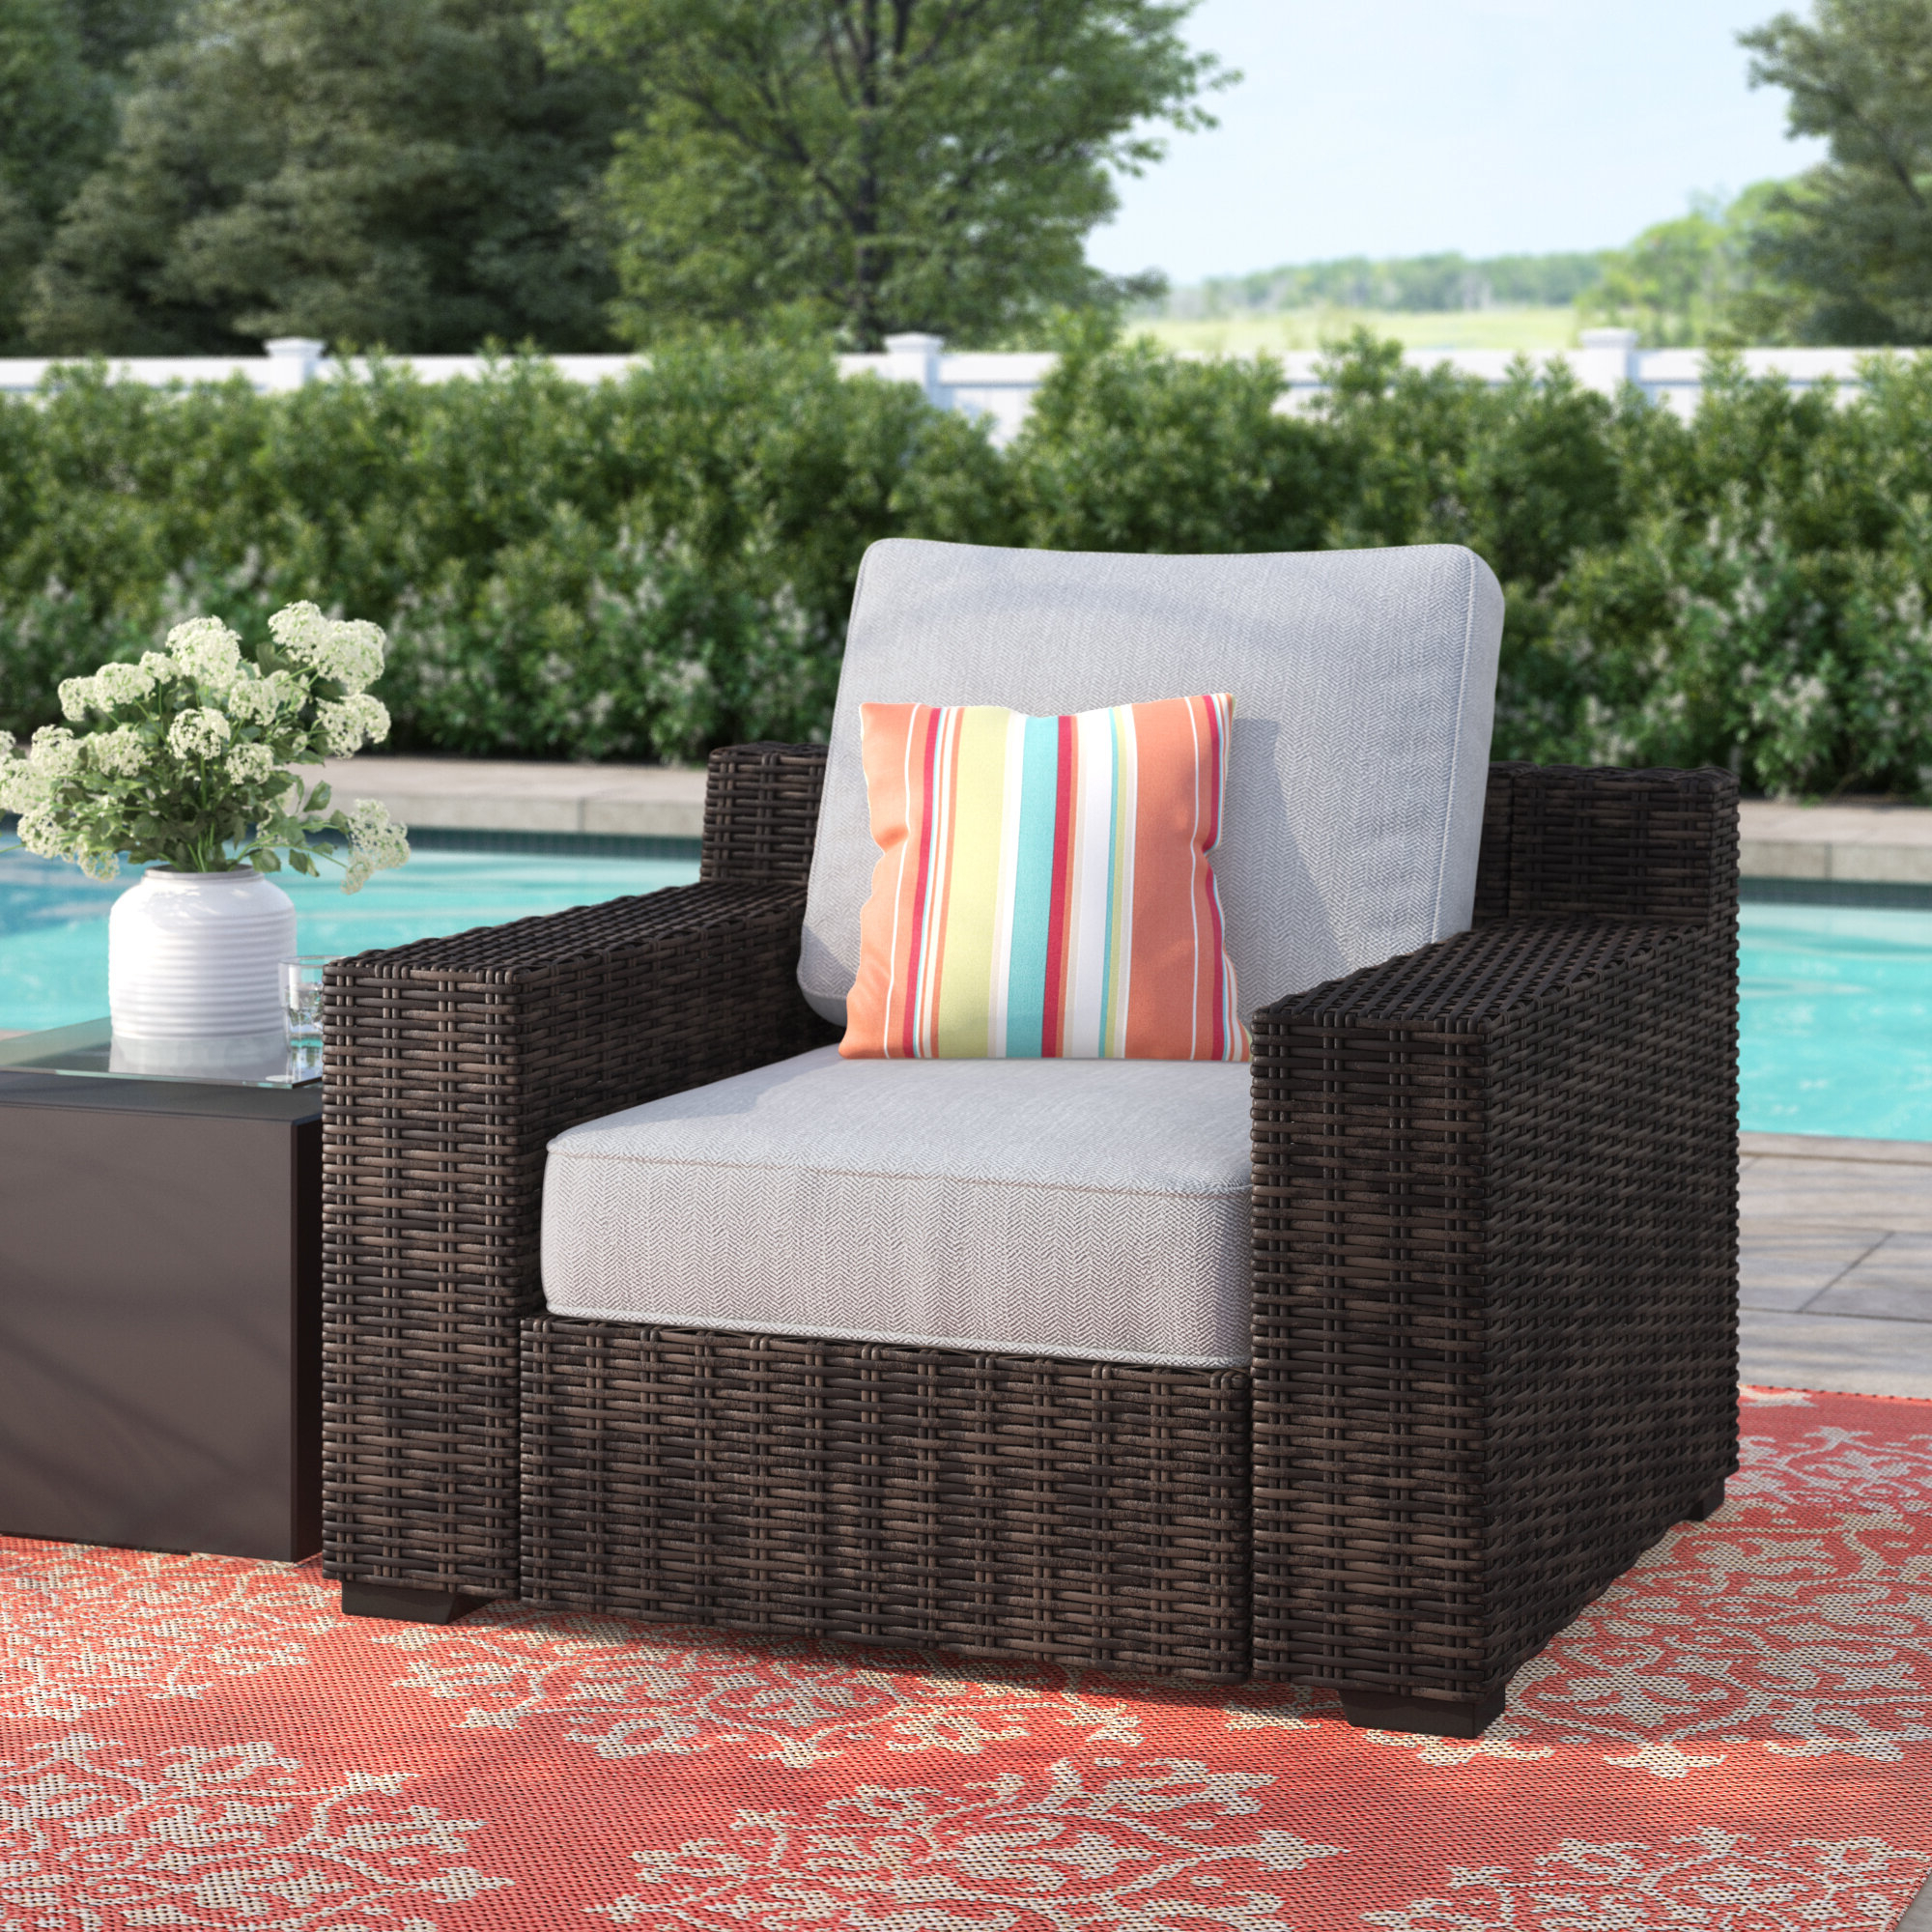 Popular Oreland Patio Sofas With Cushions Within Oreland Patio Chair With Cushions (View 6 of 20)